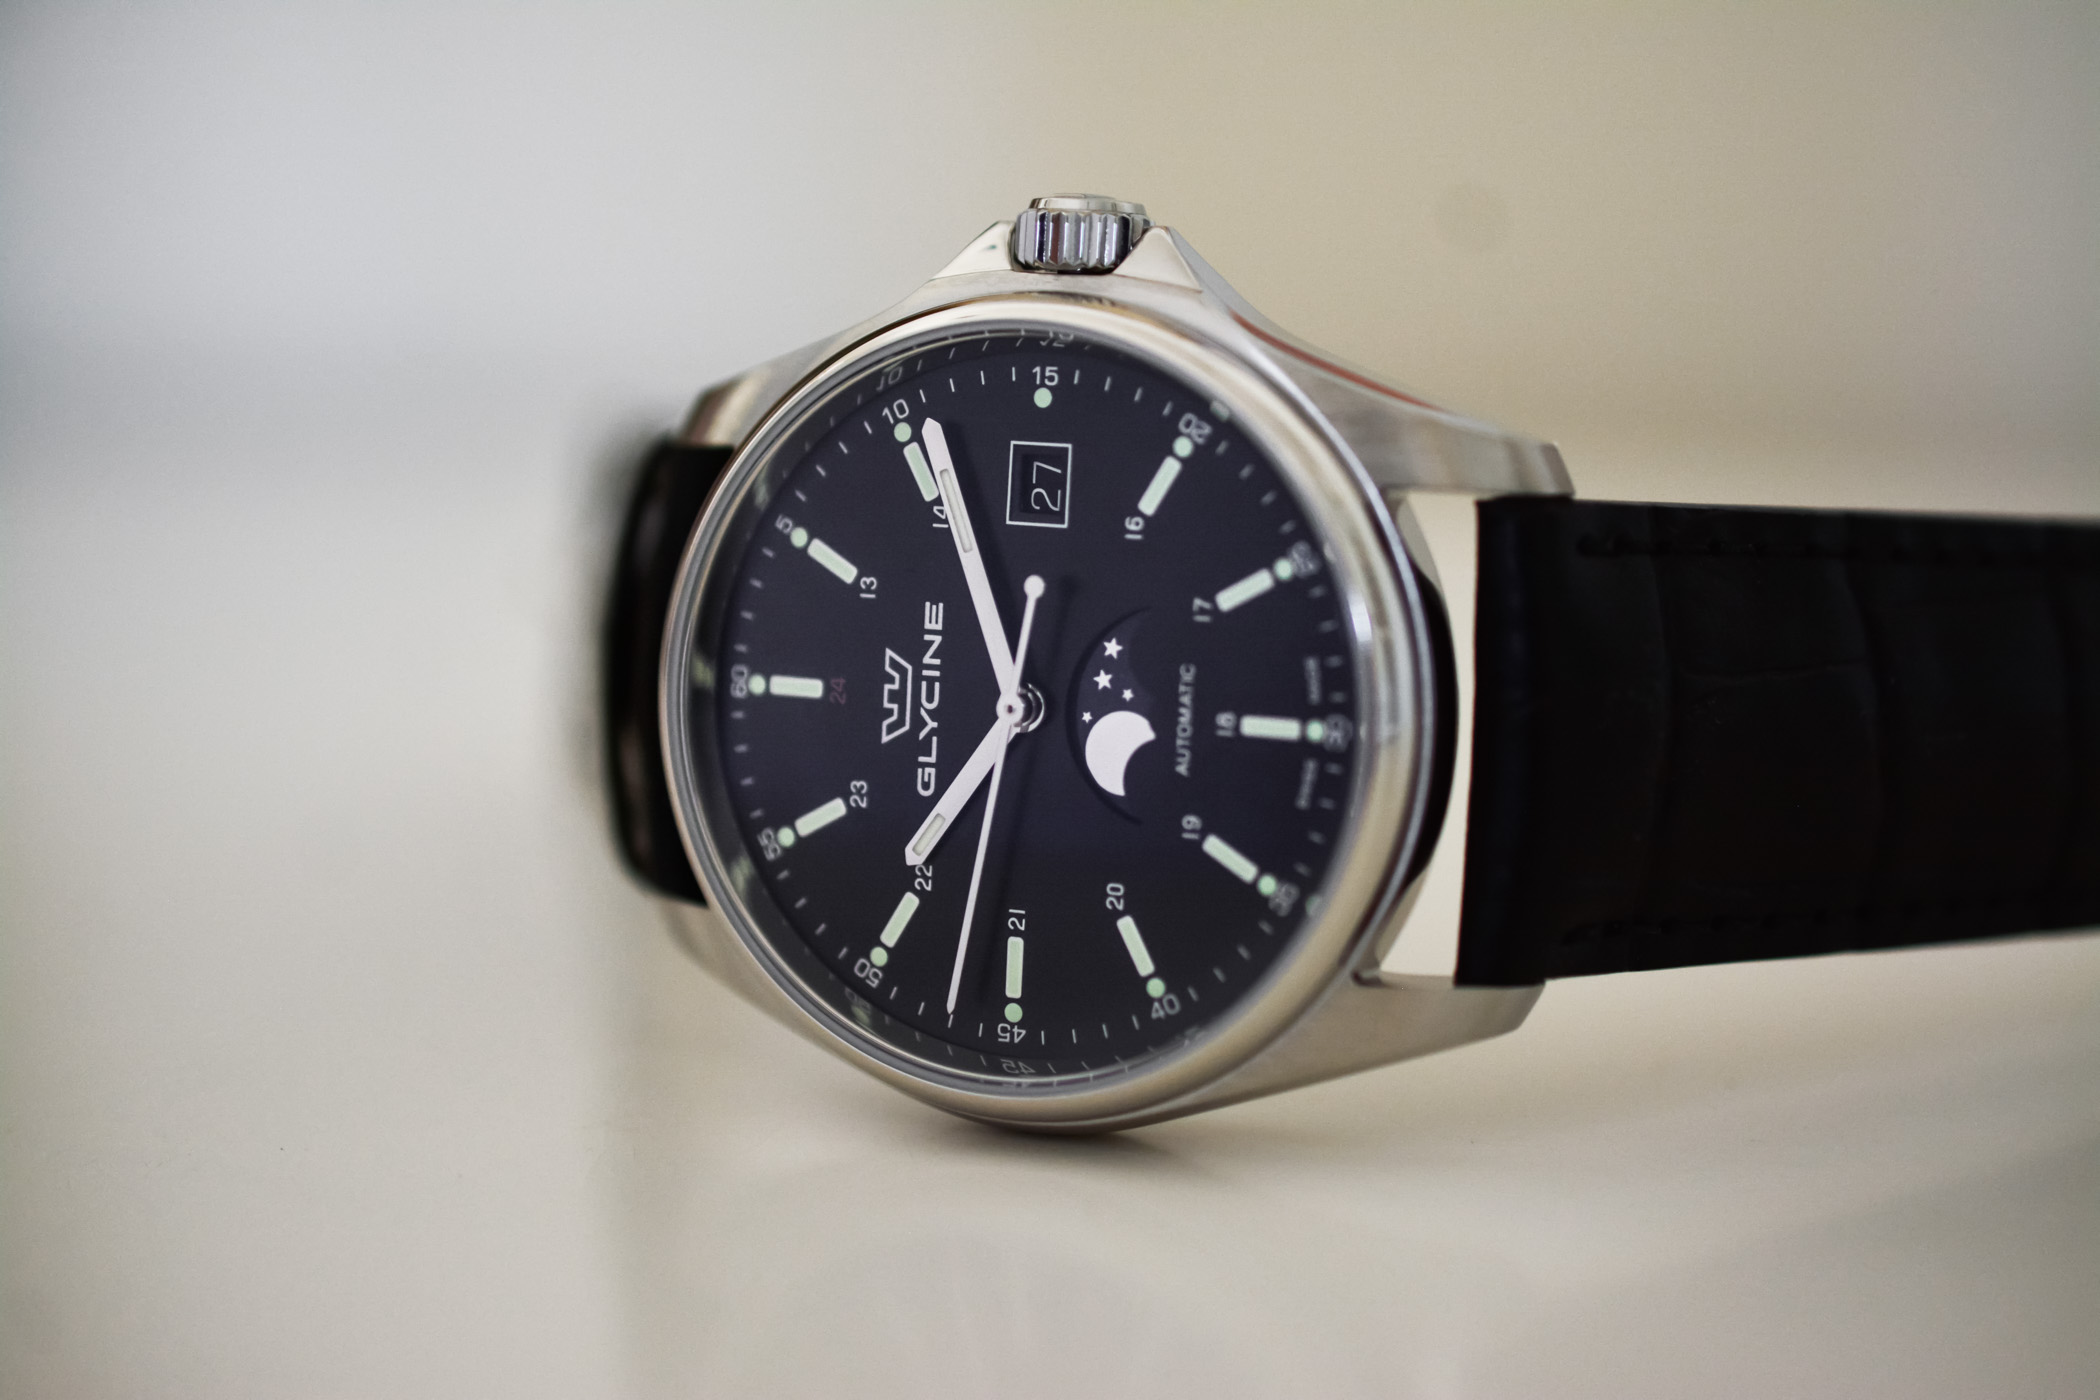 Glycine Combat 6 Classic Moonphase - Value Proposition Review - 2